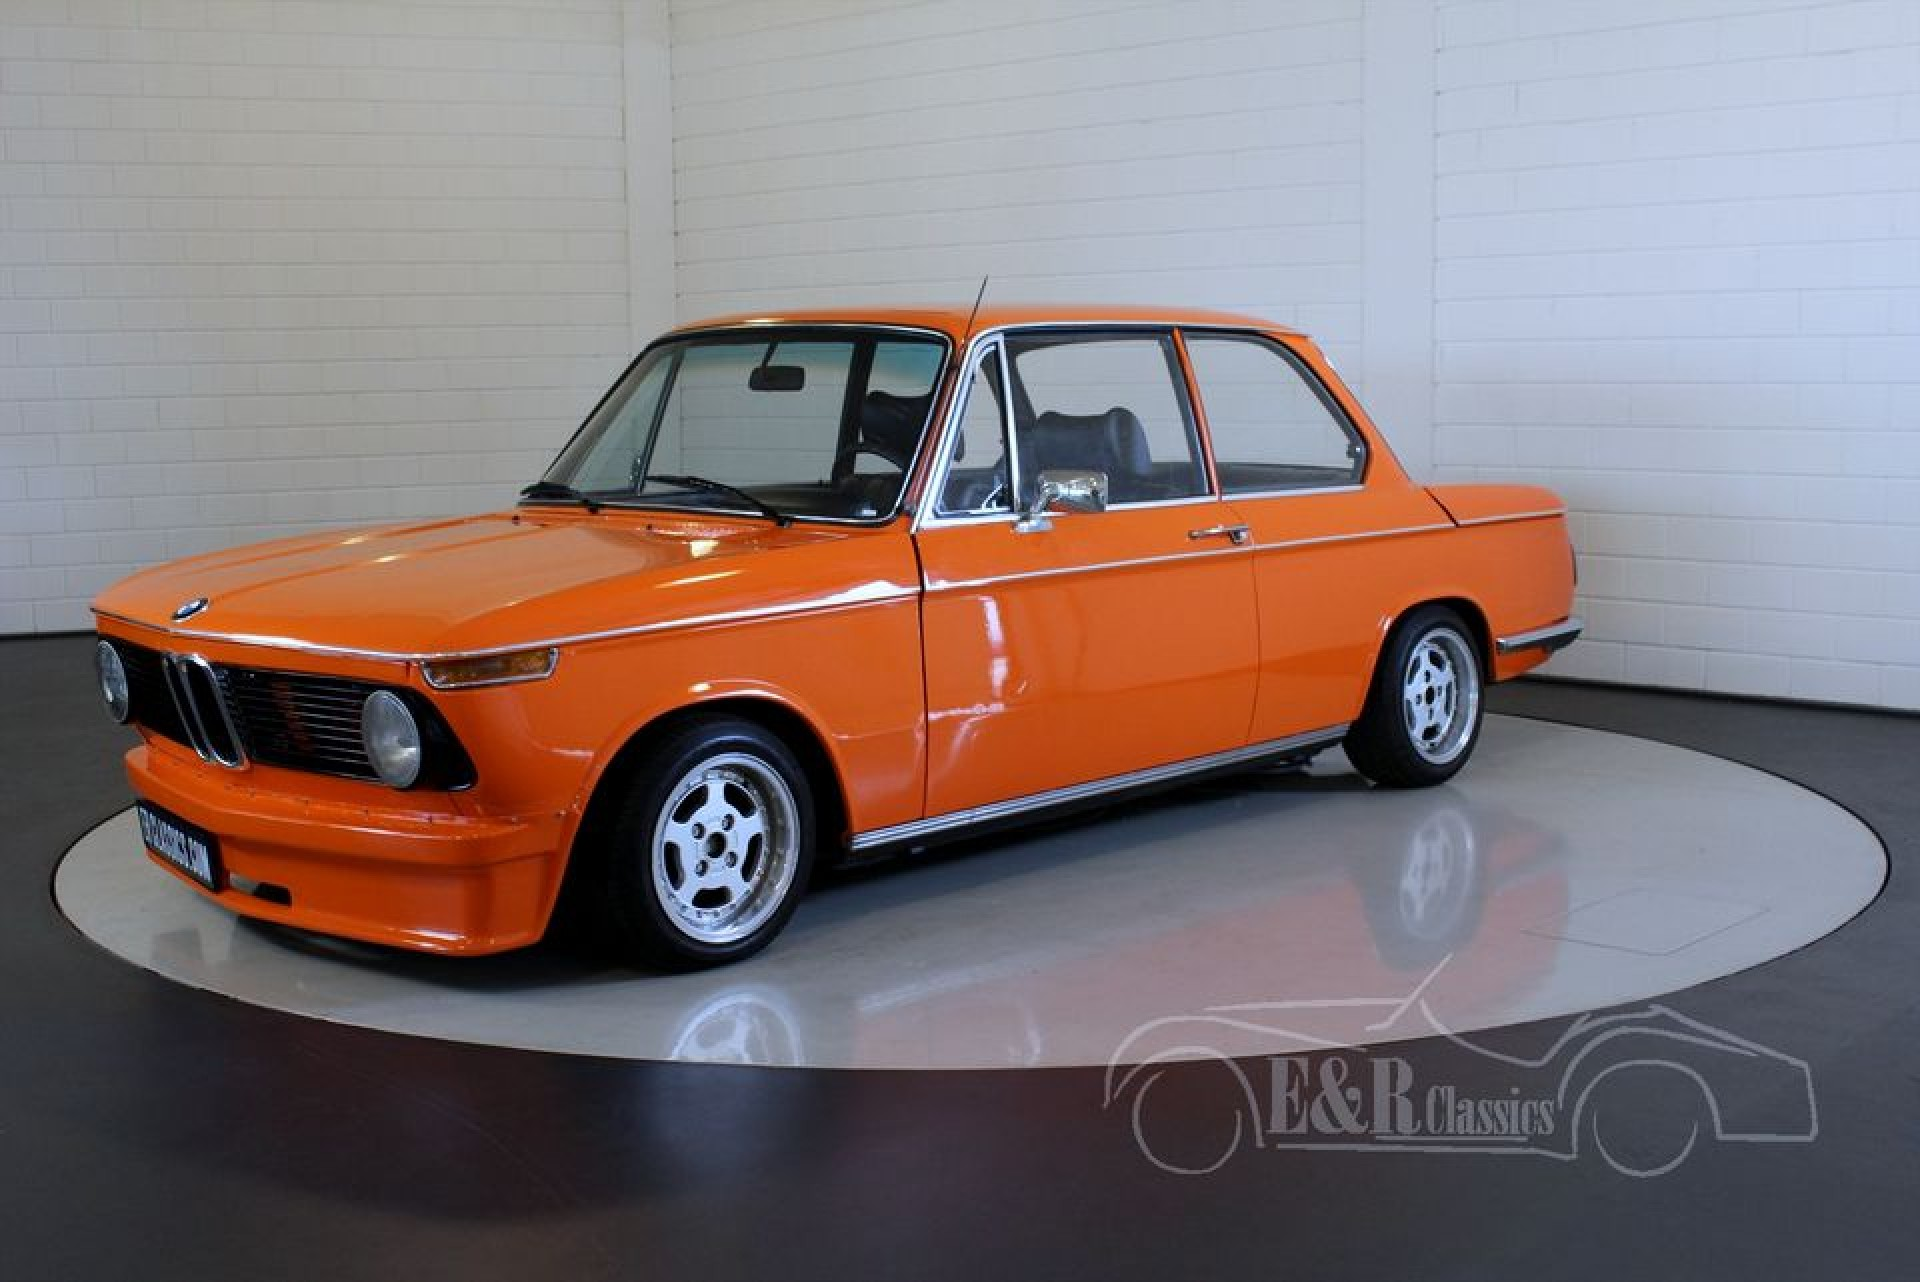 bmw 1502 sedan 1975 zum kauf bei erclassics. Black Bedroom Furniture Sets. Home Design Ideas